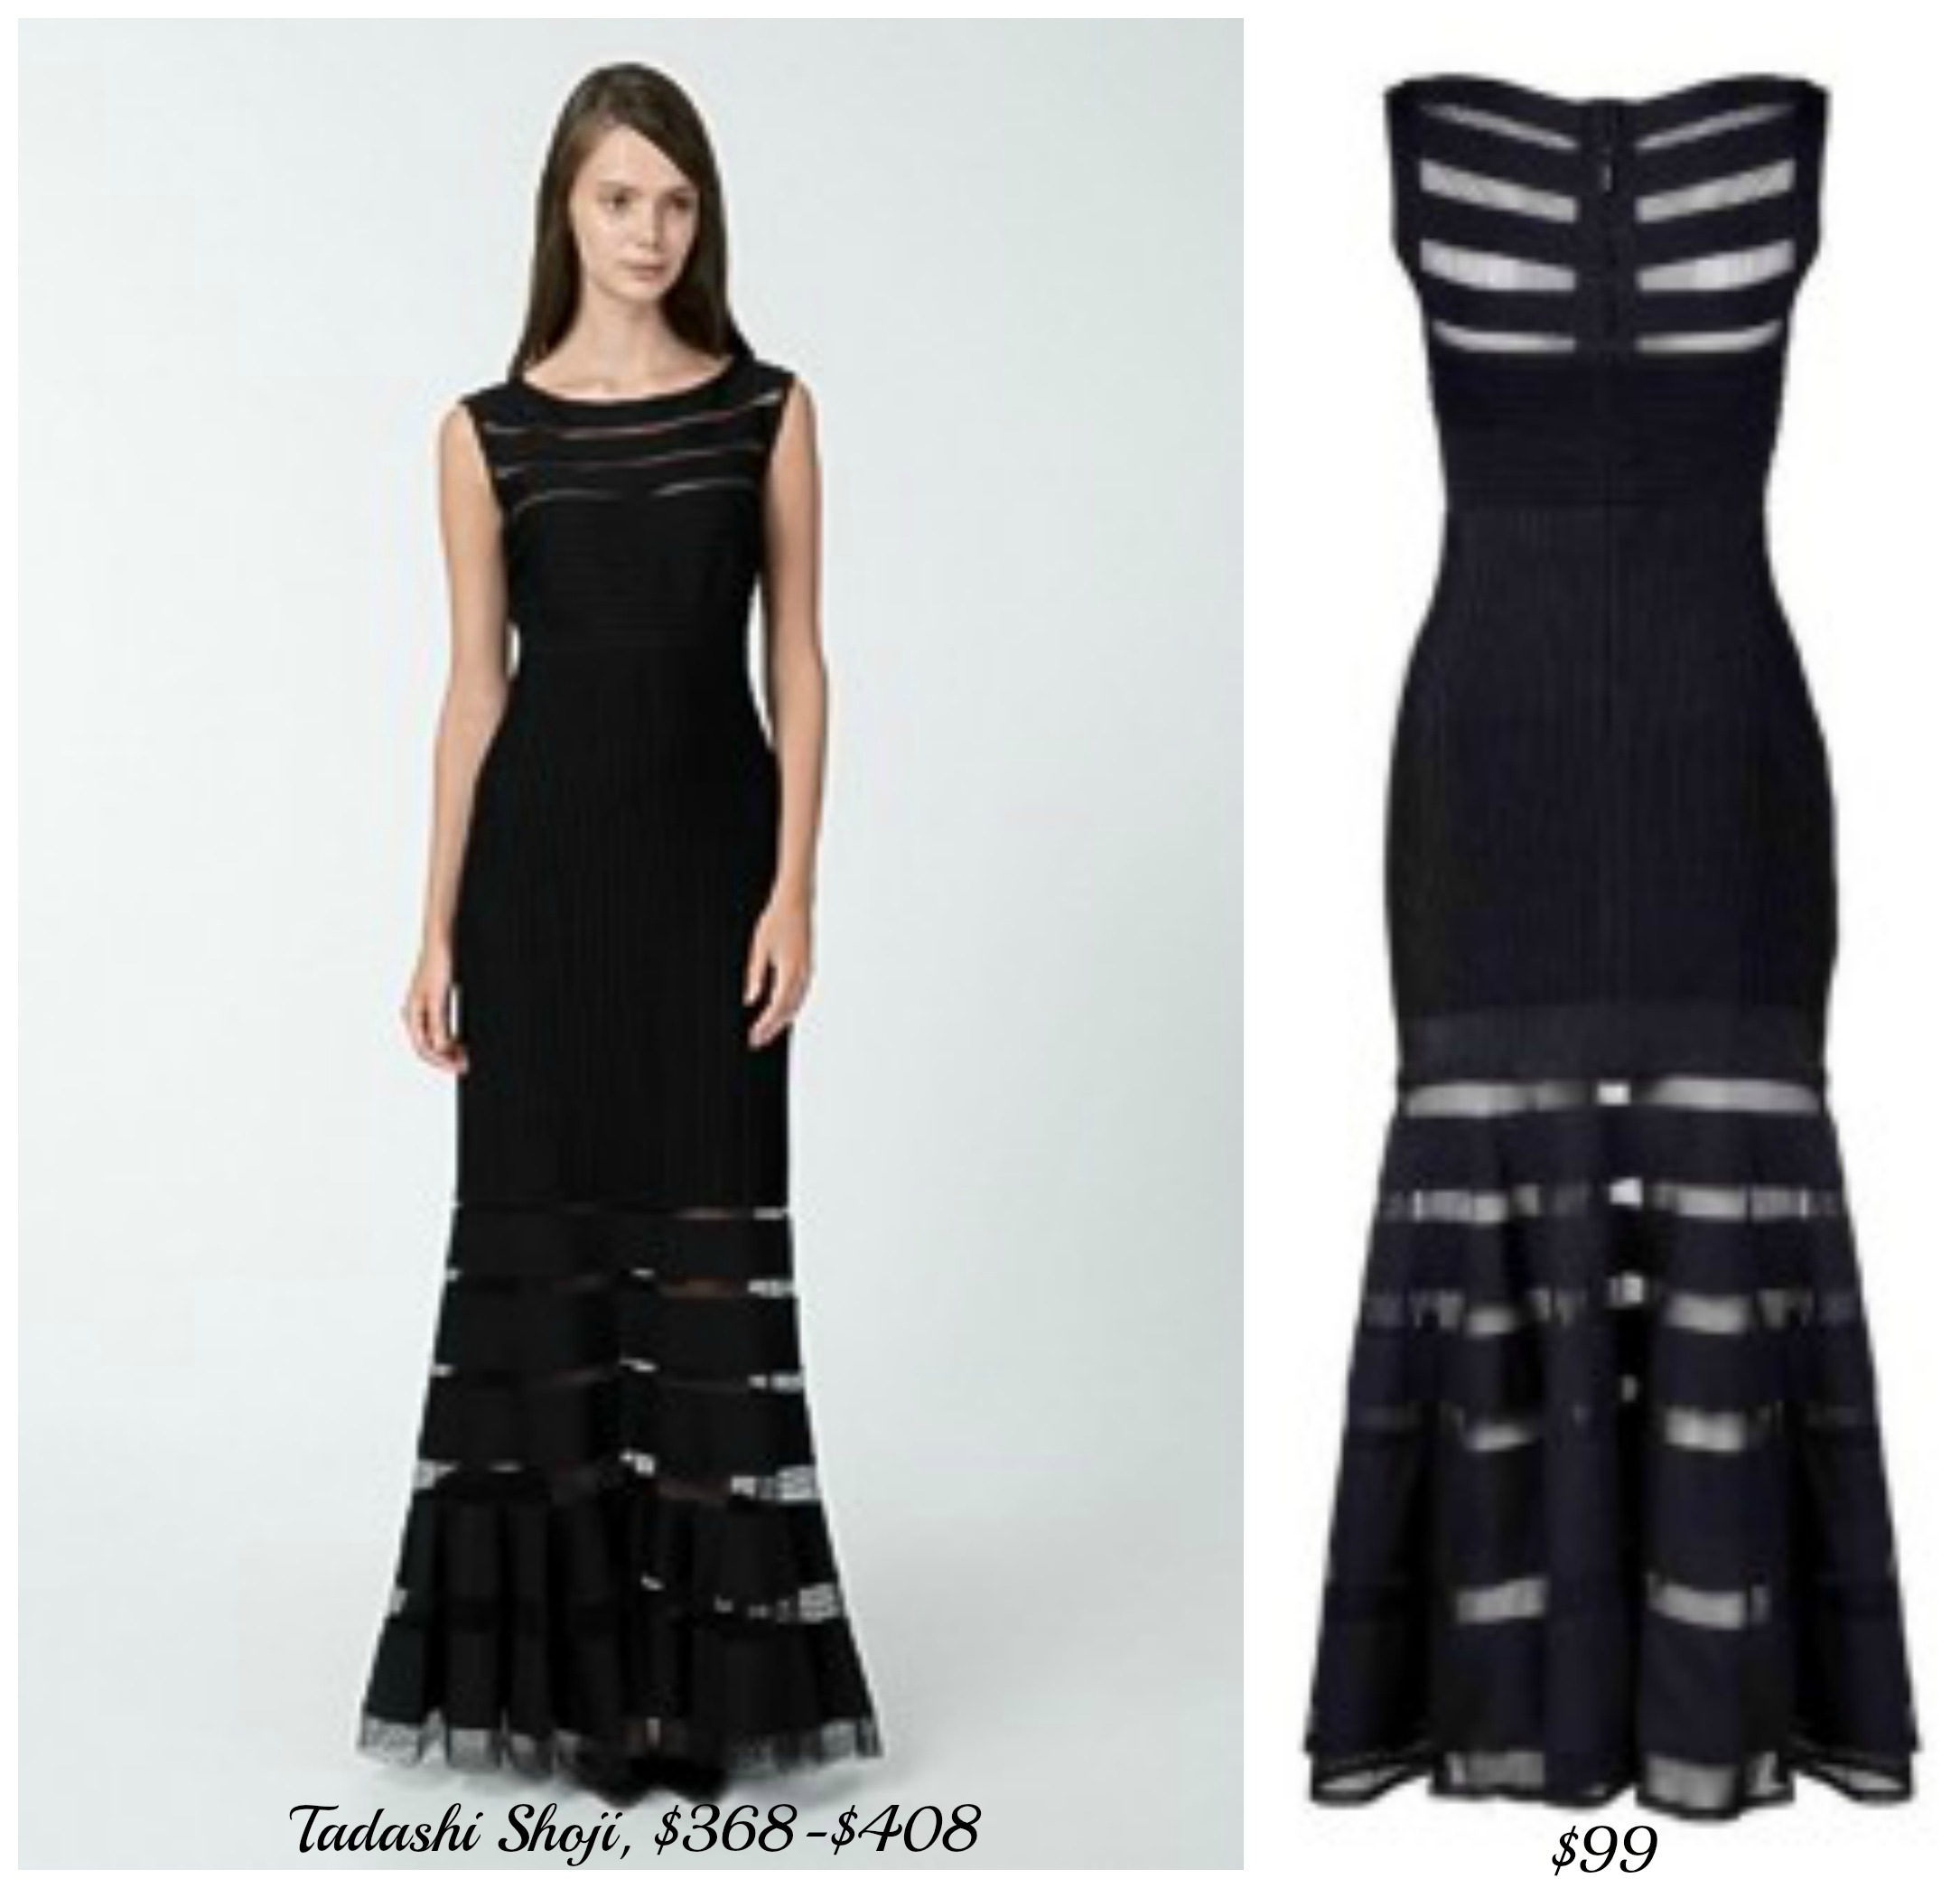 "The Look For Less: ""The Tadashi Shoji Pintuck Gown"" 